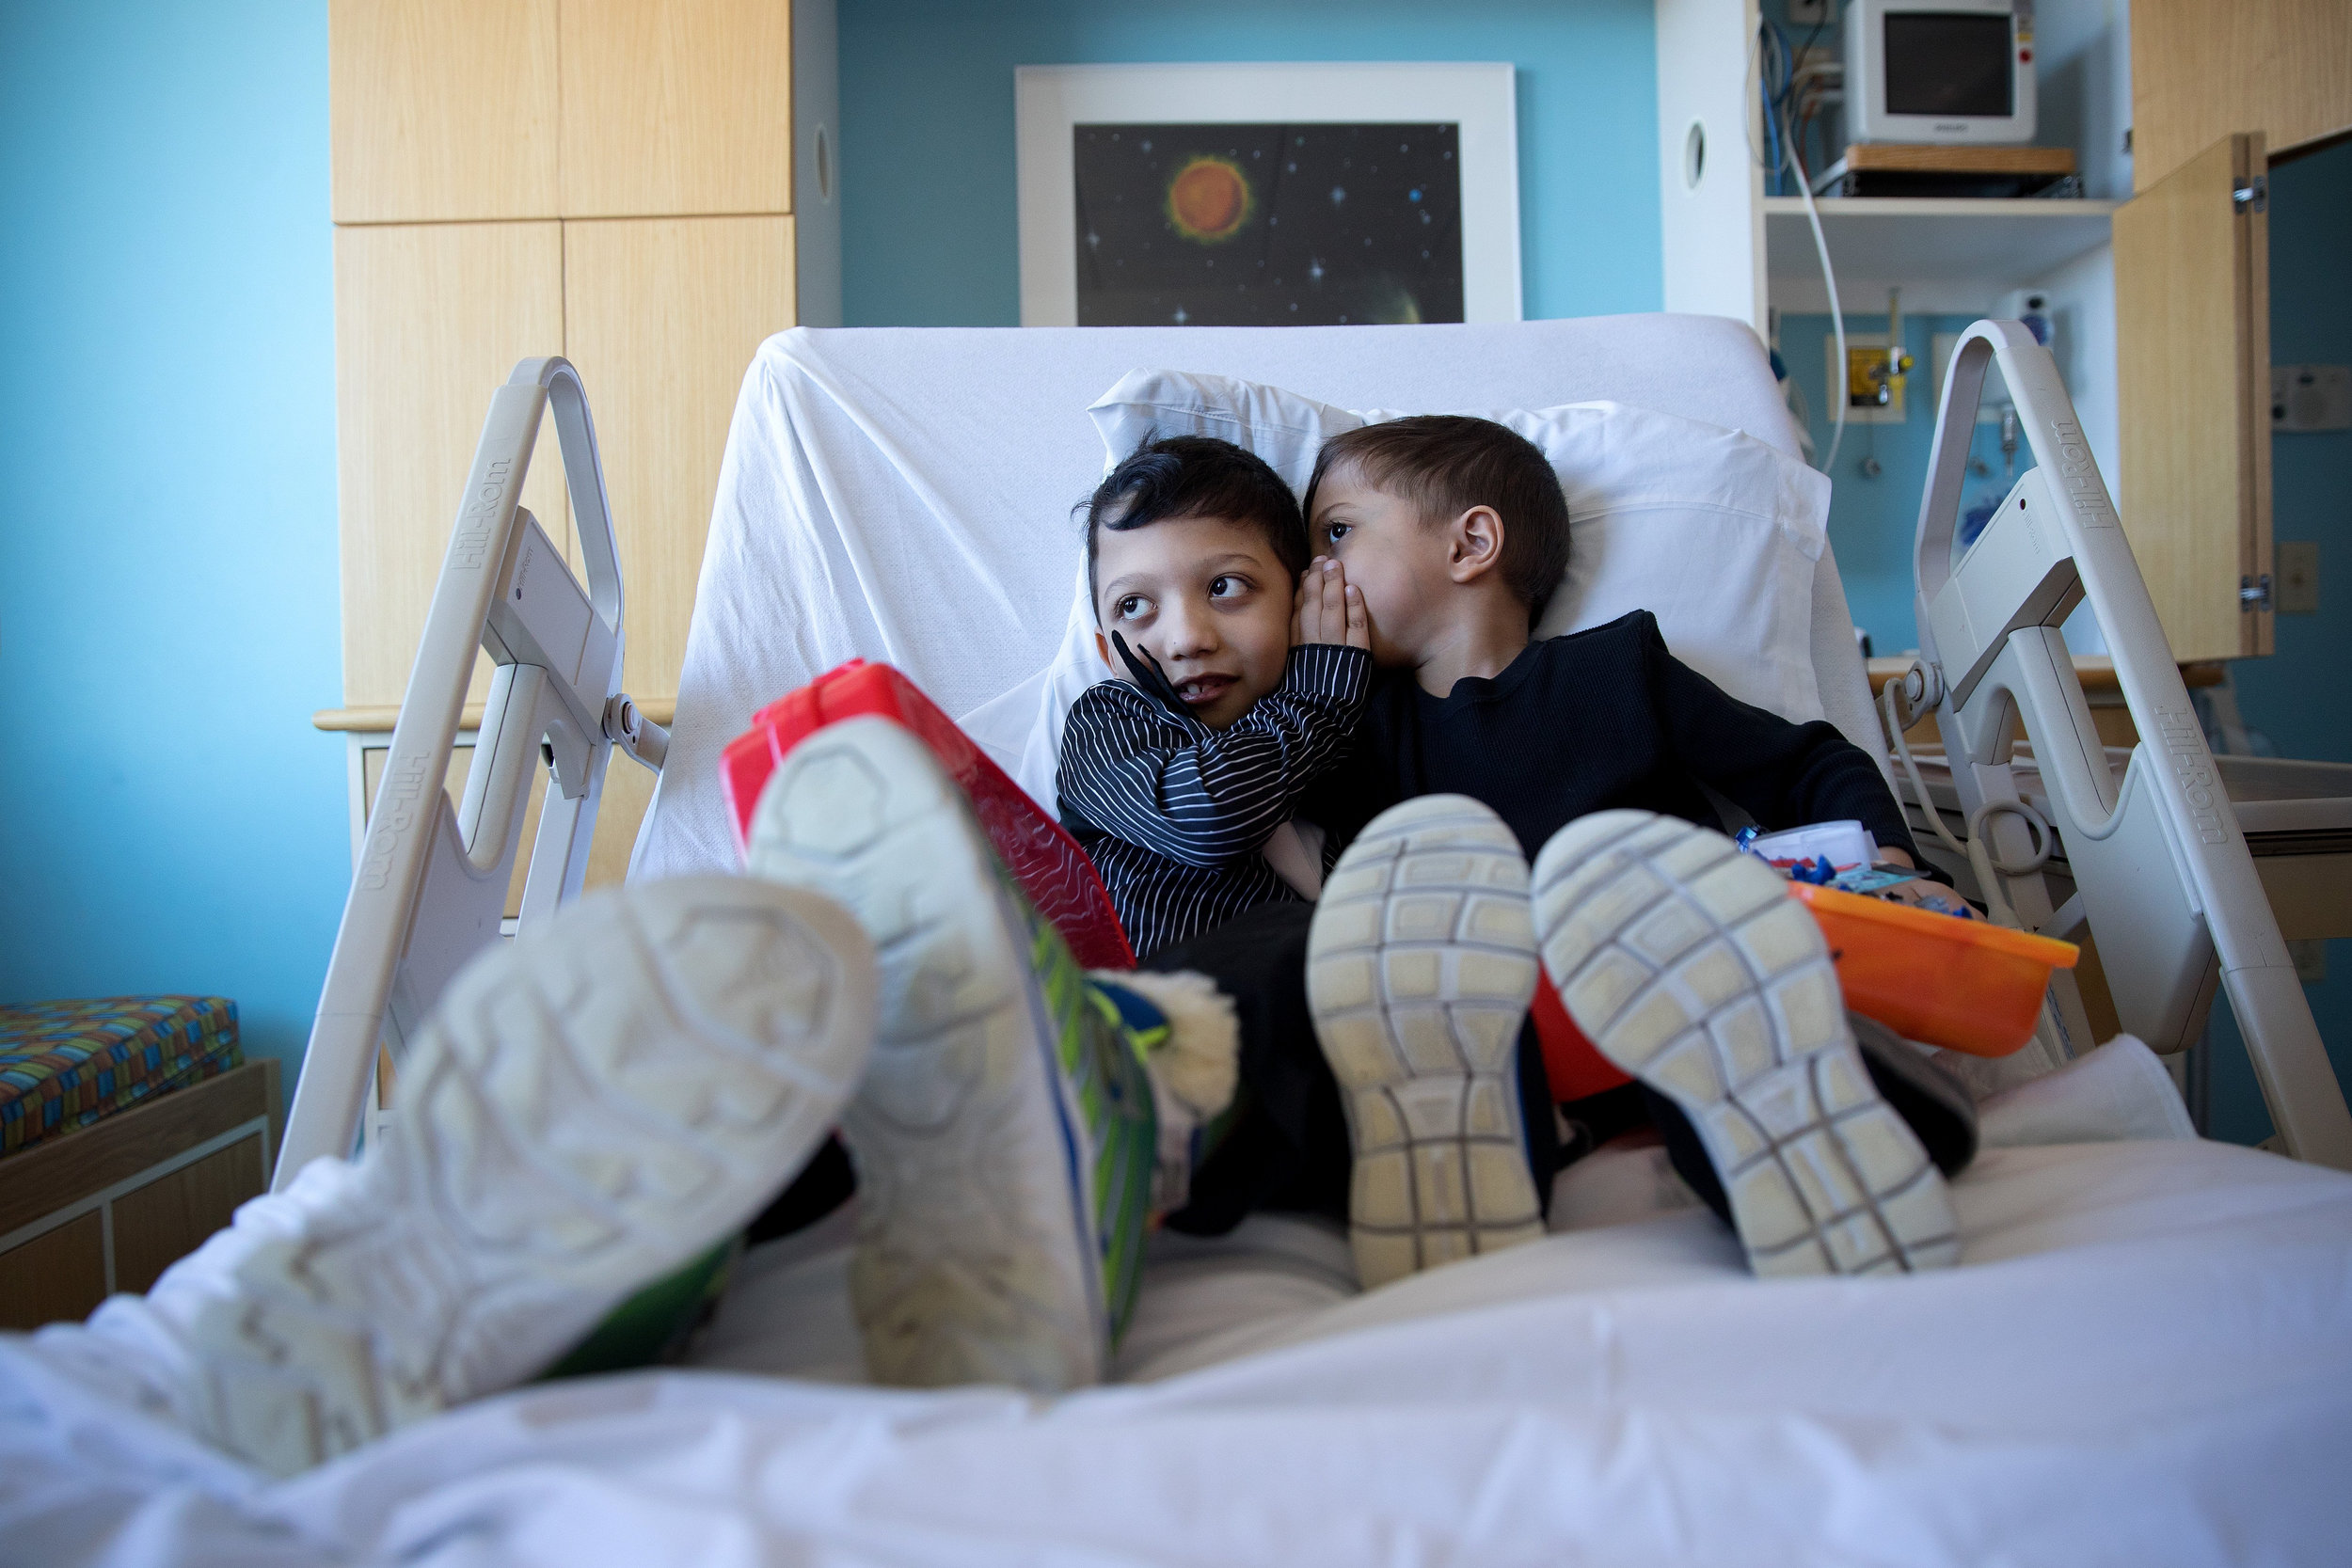 """At Children's Hospital & Medical Center, Arshaan, left, and Jahan tell each other secrets before undergoing infusions to regulate high blood calcium levels. """"Like all rare diseases, there are difficulties that the family has to undergo. There are sacrifices that we make as a family,"""" their mother said."""